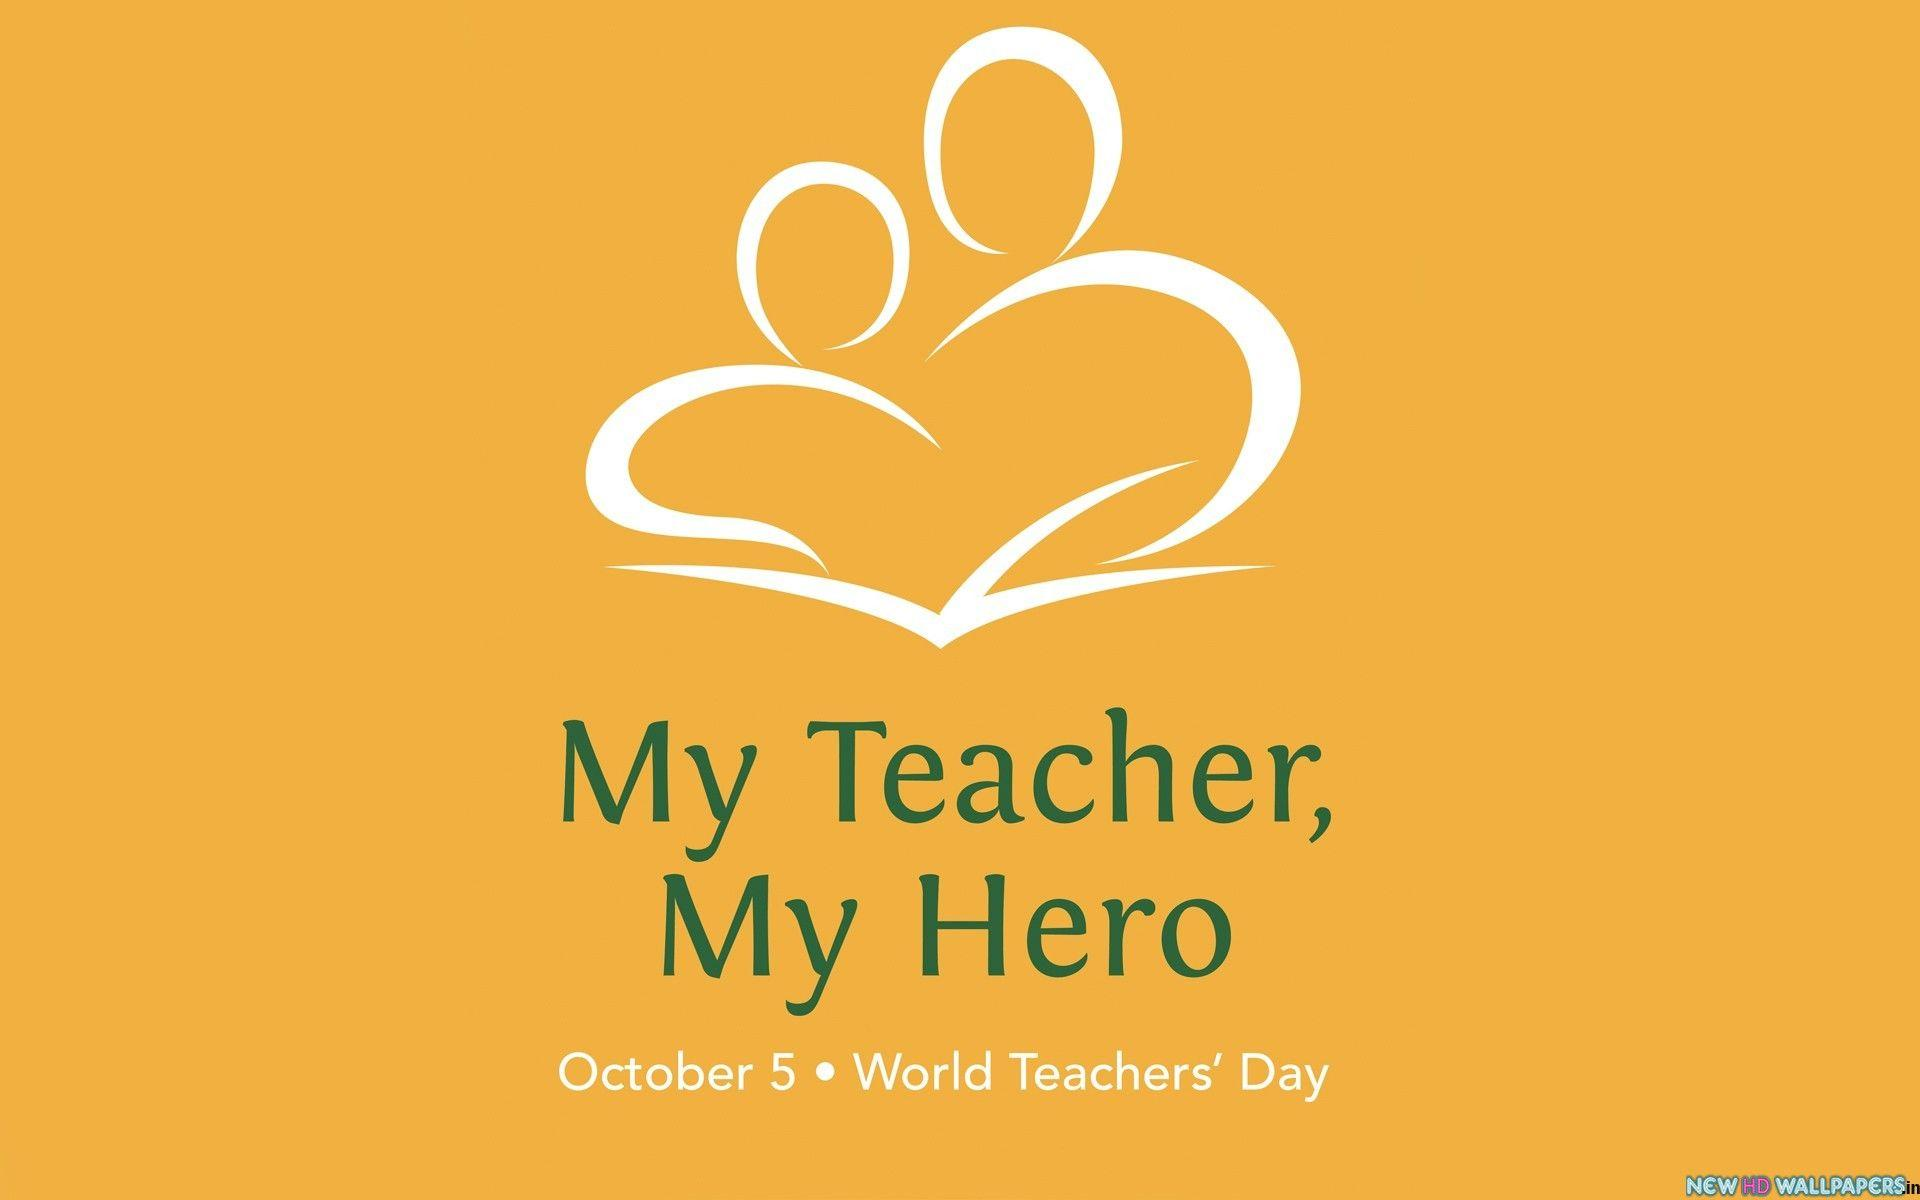 World teachers day wallpapers wallpaper cave happy teachers day images pictures photos wallpapers quotes page 5 altavistaventures Images